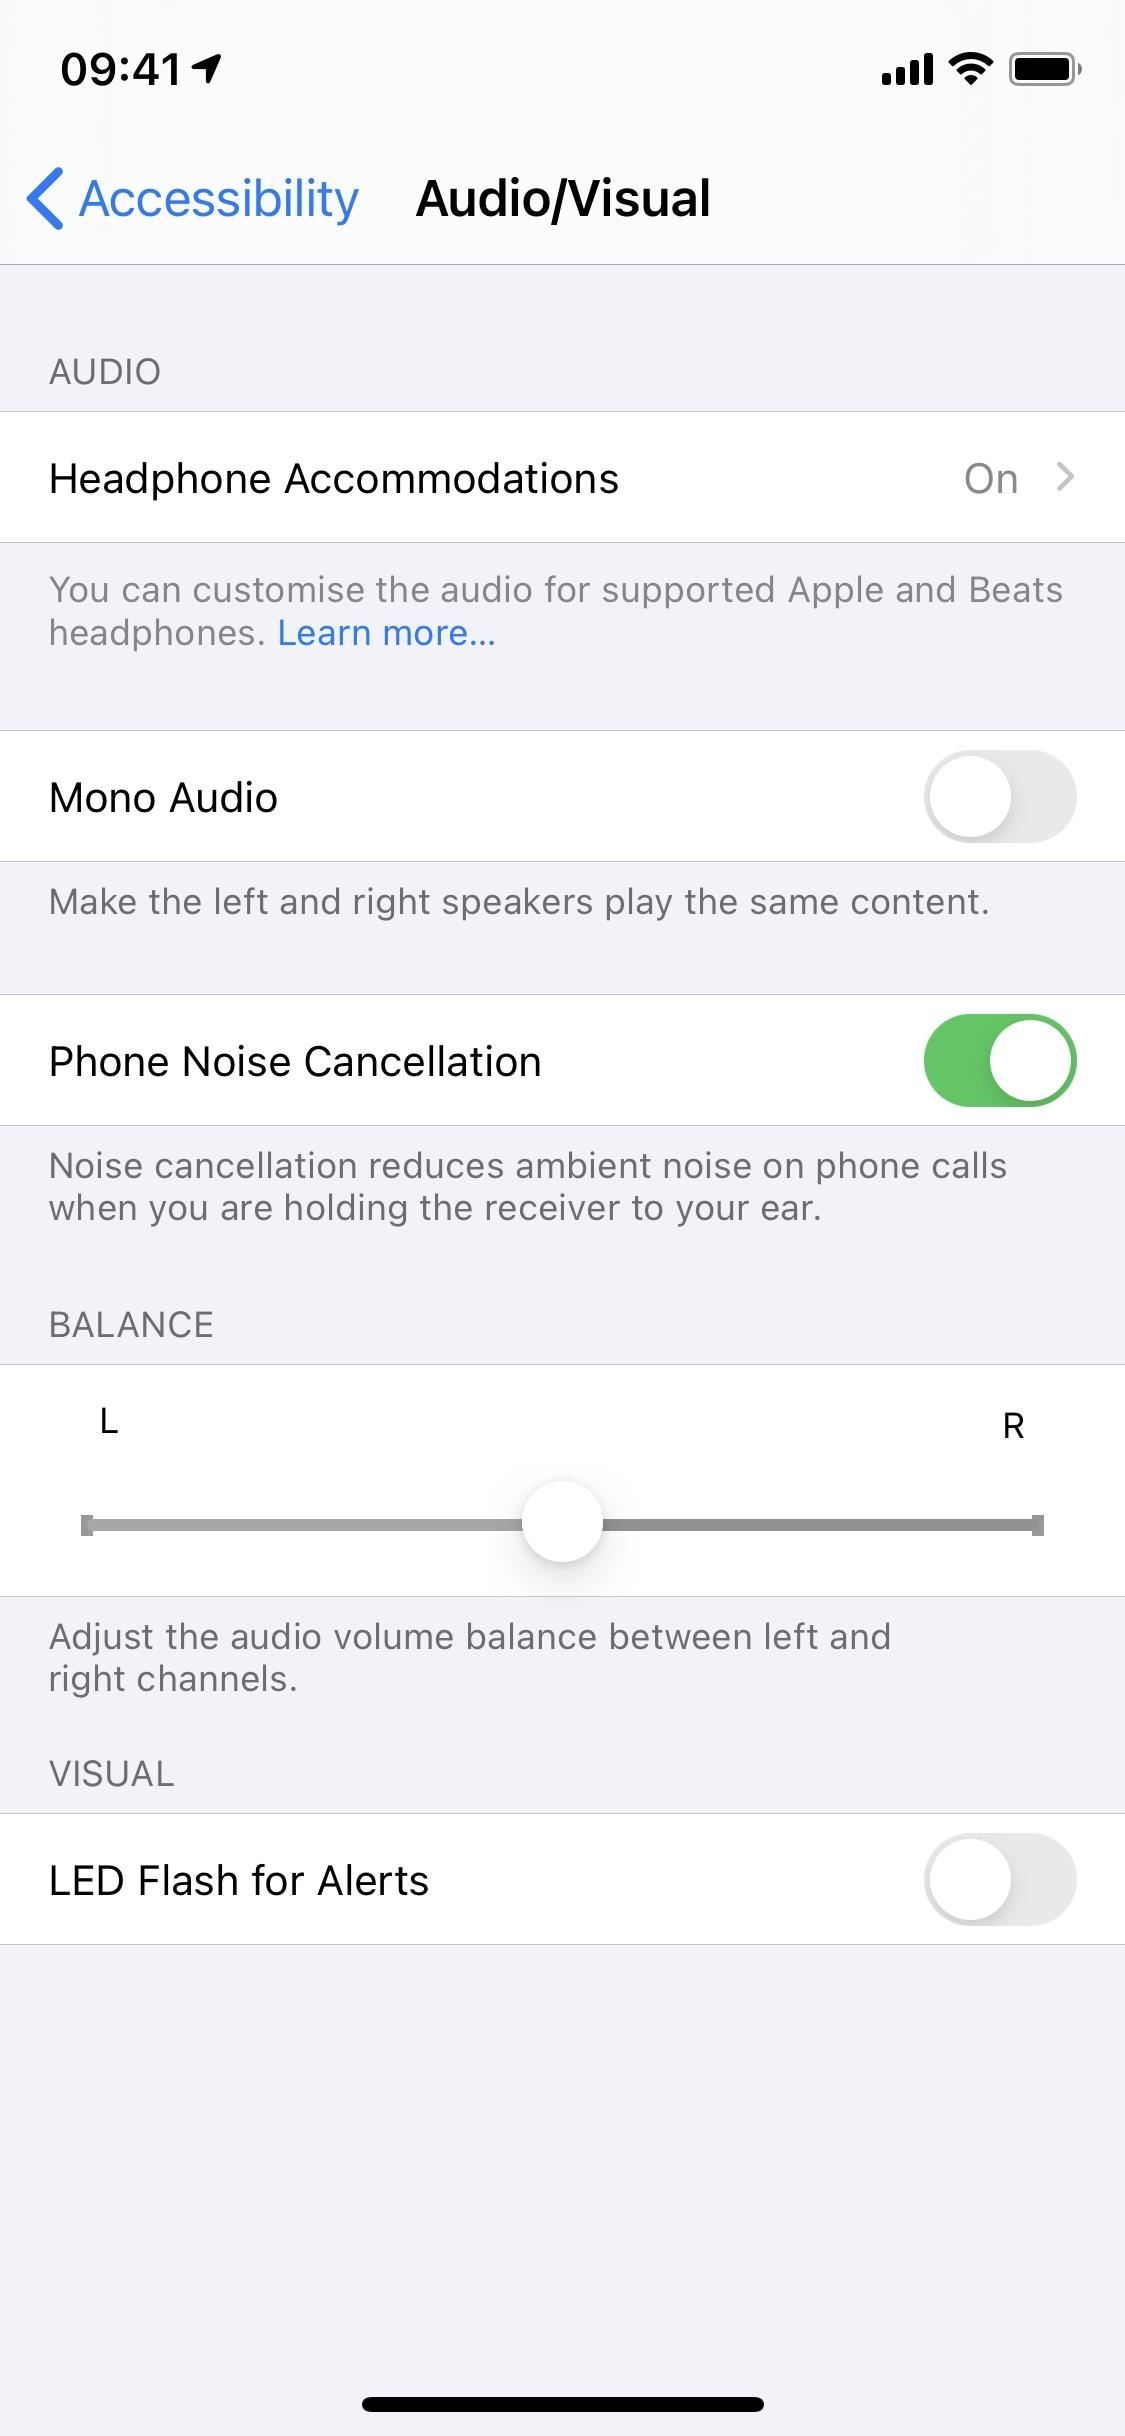 18 New Accessibility Features in iOS 14 That Everyone Can Take Advantage Of